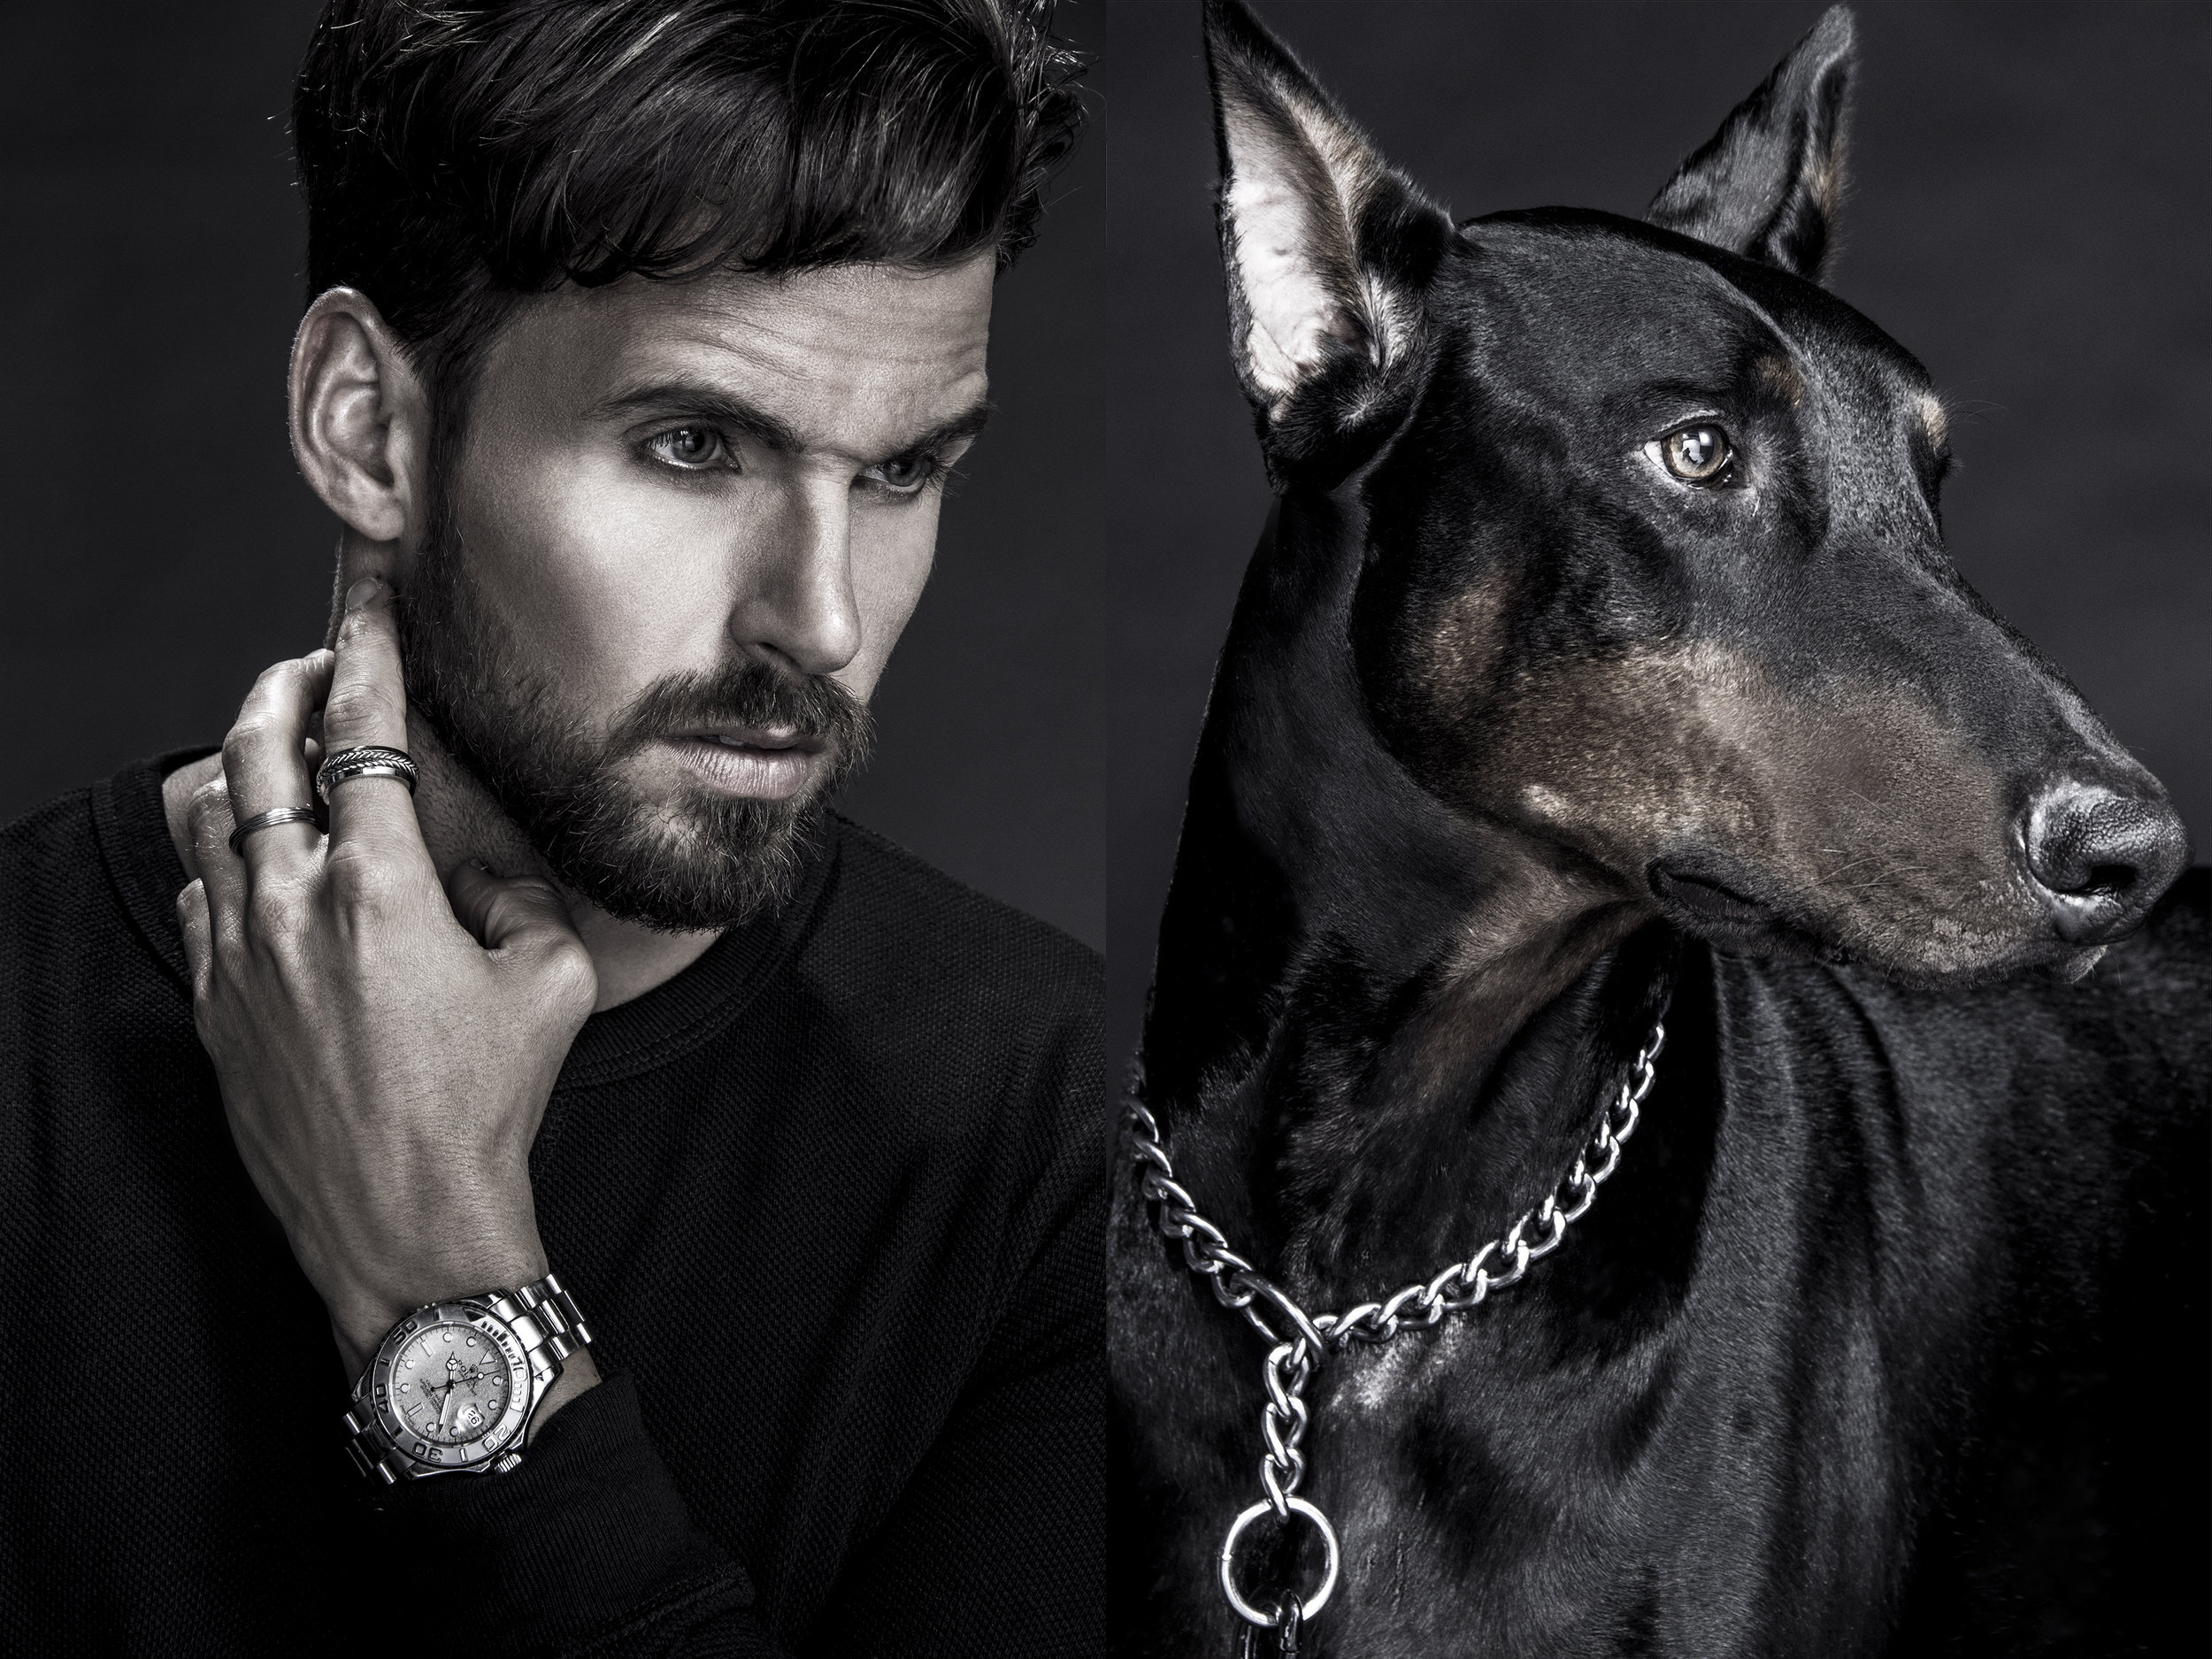 Commercial-advertising-photography-lowkey-portrait-watch-diptych-edgy-fashion-man-dog-doberman-connected_04.jpg